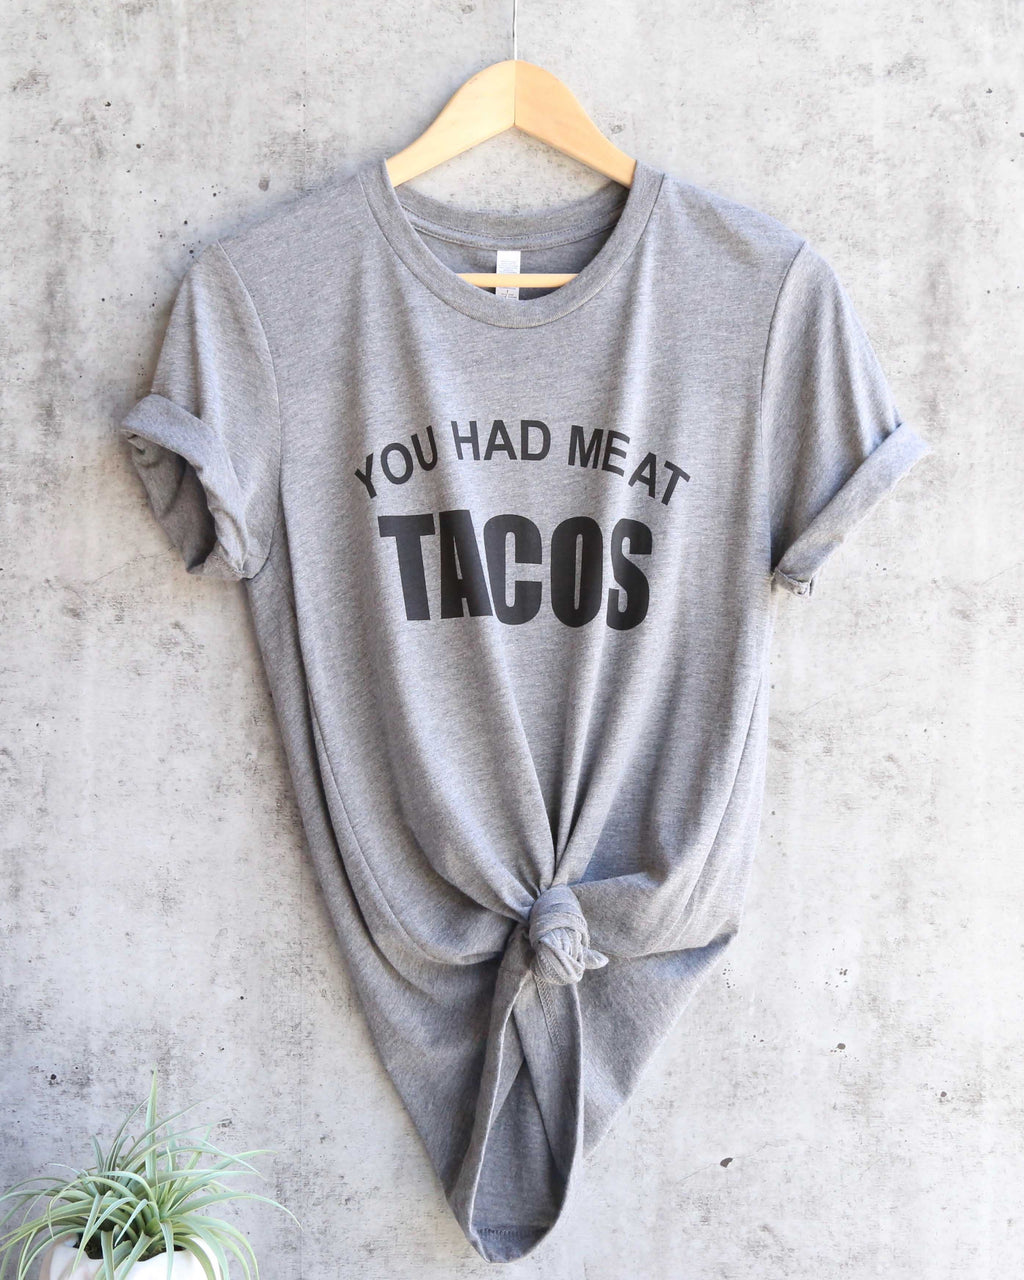 Distracted - You Had Me At Tacos Unisex Triblend Graphic Tee in Grey/Black